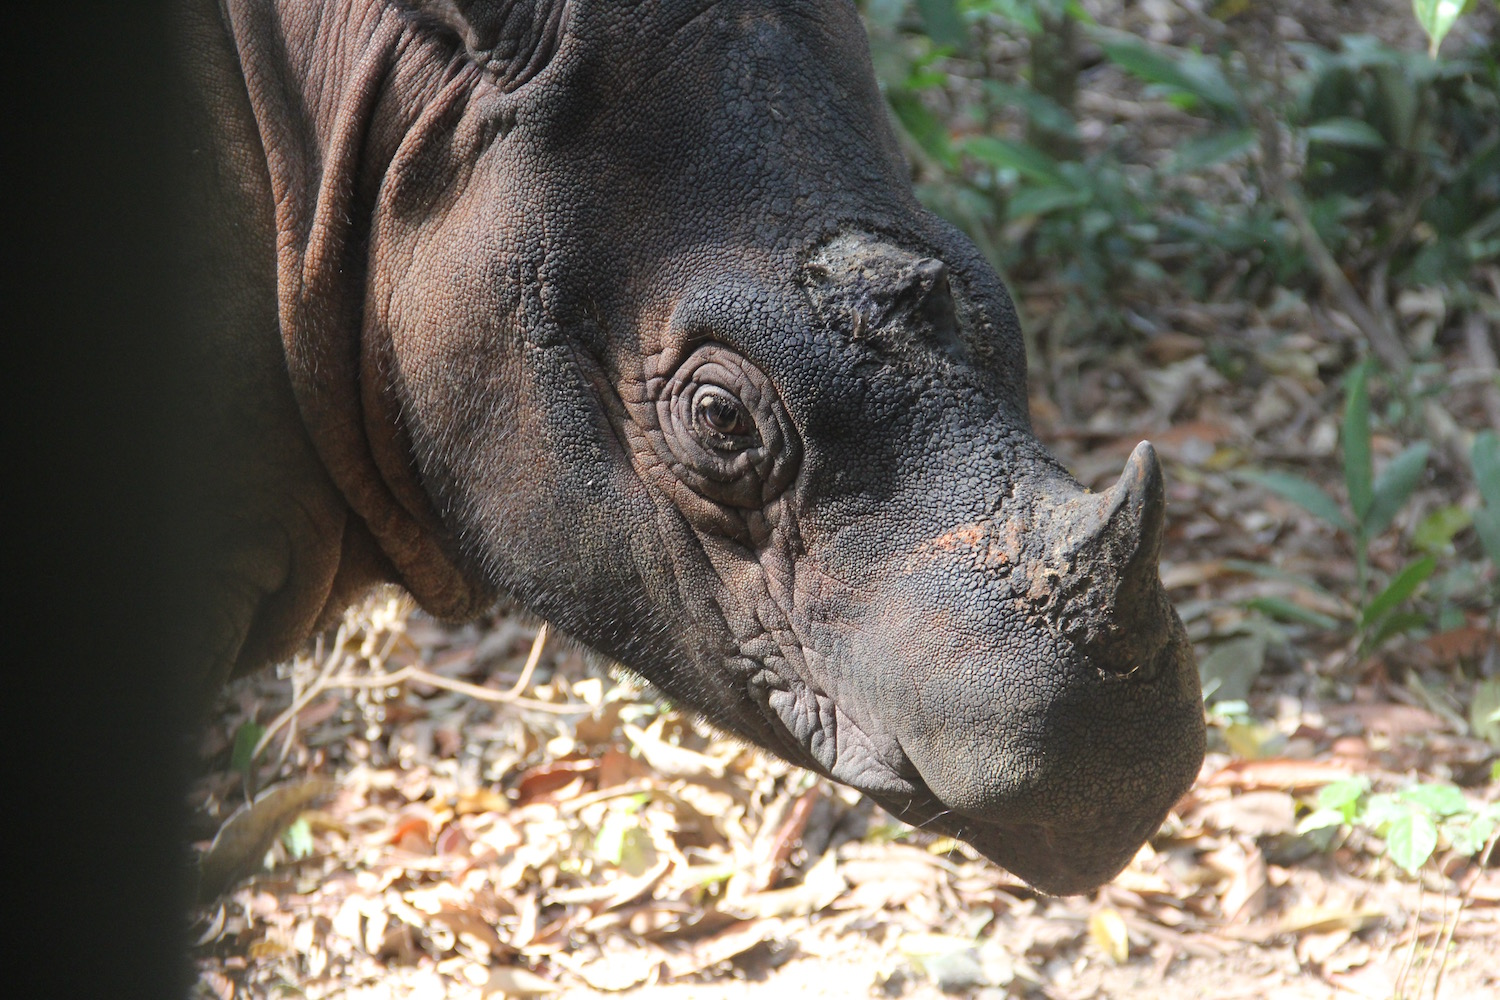 In this 2017 image, young Andatu has a breakfast of watermelon after being checked by keepers. Andatu made history as the first captive born Sumatran rhino in Indonesia when he was born in 2012. Image by Jeremy Hance for Mongabay.